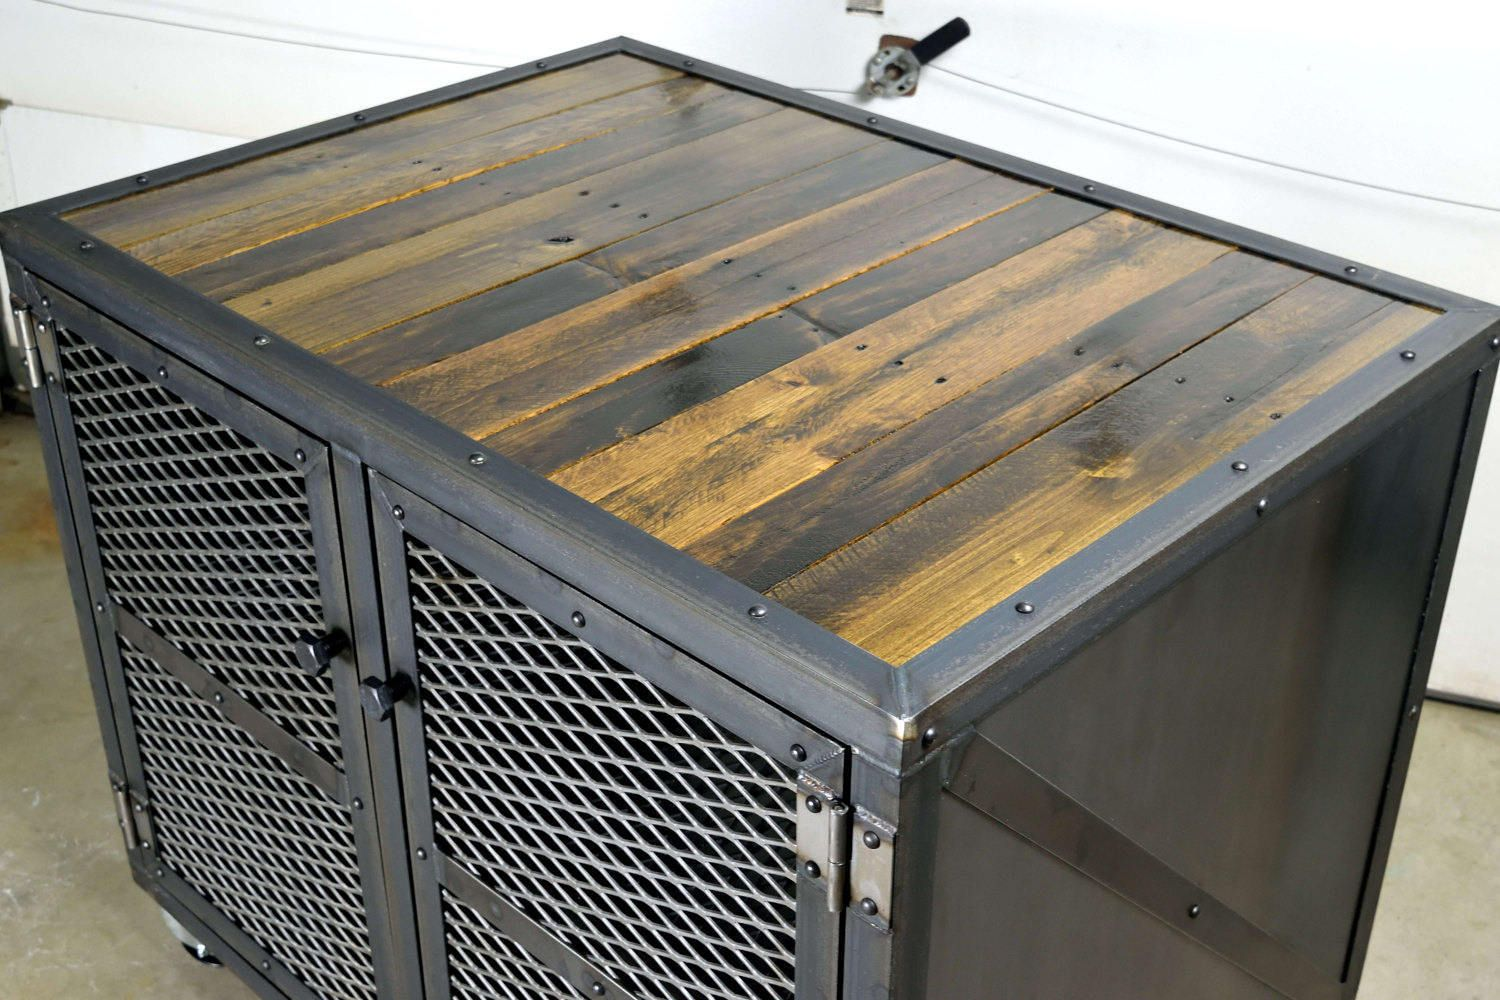 Industrial Kitchen Island Bar  Storage Cabinet is part of Industrial furniture Islands - This Unique piece of industrial furniture is crafted from hot rolled steel, reclaimed oak and pine, expanded metal and steel casters  All of the Woodwork and Fabrication Cutting, grinding, welding, drilling, riveting and construction is done by hand, one part at a time  This custom made industrial cabinet would work great as a Kitchen Island, Bar Cart or any other storage cabinet  It features 2 doors on each side and a shelf about halfway up that runs throughout  The steel has a hand applied wax finish to prevent rust but preserve the look of raw steel  The wood has a durable multi coat polyurethane finish  This piece can be made with wood in place of any of the steel panels or any configuration of door styles  Dimensions 42 x30 x35 tall PLEASE CONTACT ME FOR A FREIGHT QUOTE BEFORE PURCHASE!!!!  Buyer is responsible for all shipping costs  Local pickup available The piece shown has been sold but another one can be made as is or modified to your custom specifications  CUSTOM ORDERS ARE ENCOURAGED!! Need a different size  Different finish  Other materials  If you can think of it I'm sure I can make it! Feel free to contact me with any questions or inquiries and I will reply as soon as I can!!